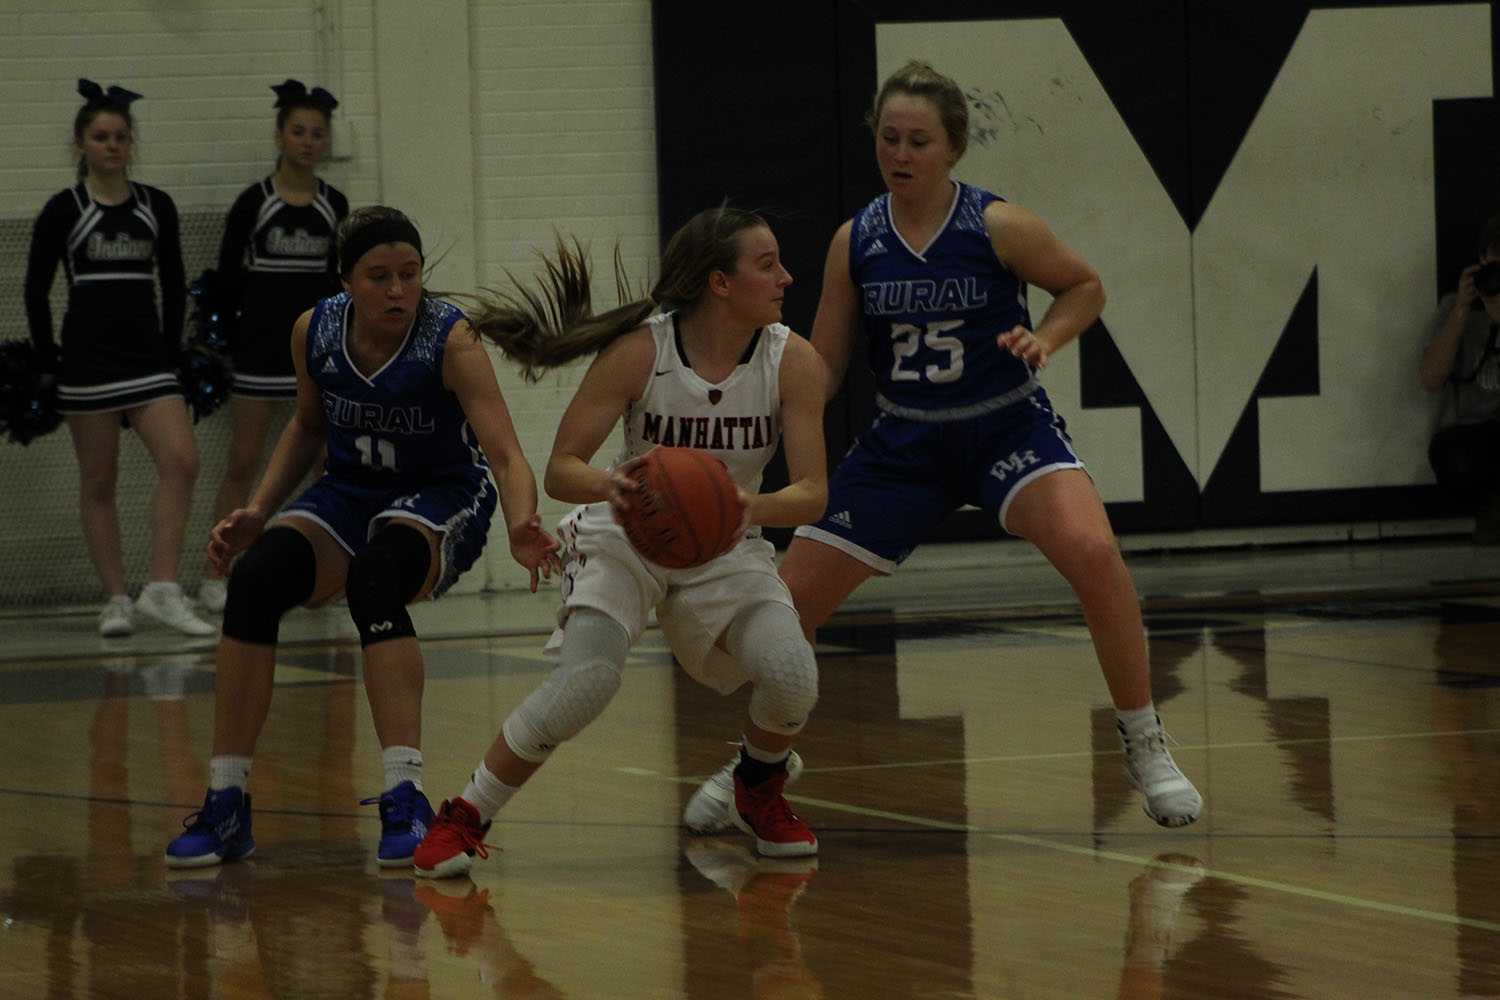 Junior+Jaiden+Weixelman+attempts+to+pass+the+ball+to+another+teammate+at+the+Varsity+Girls+basketball+game+against+Washburn+Rural.